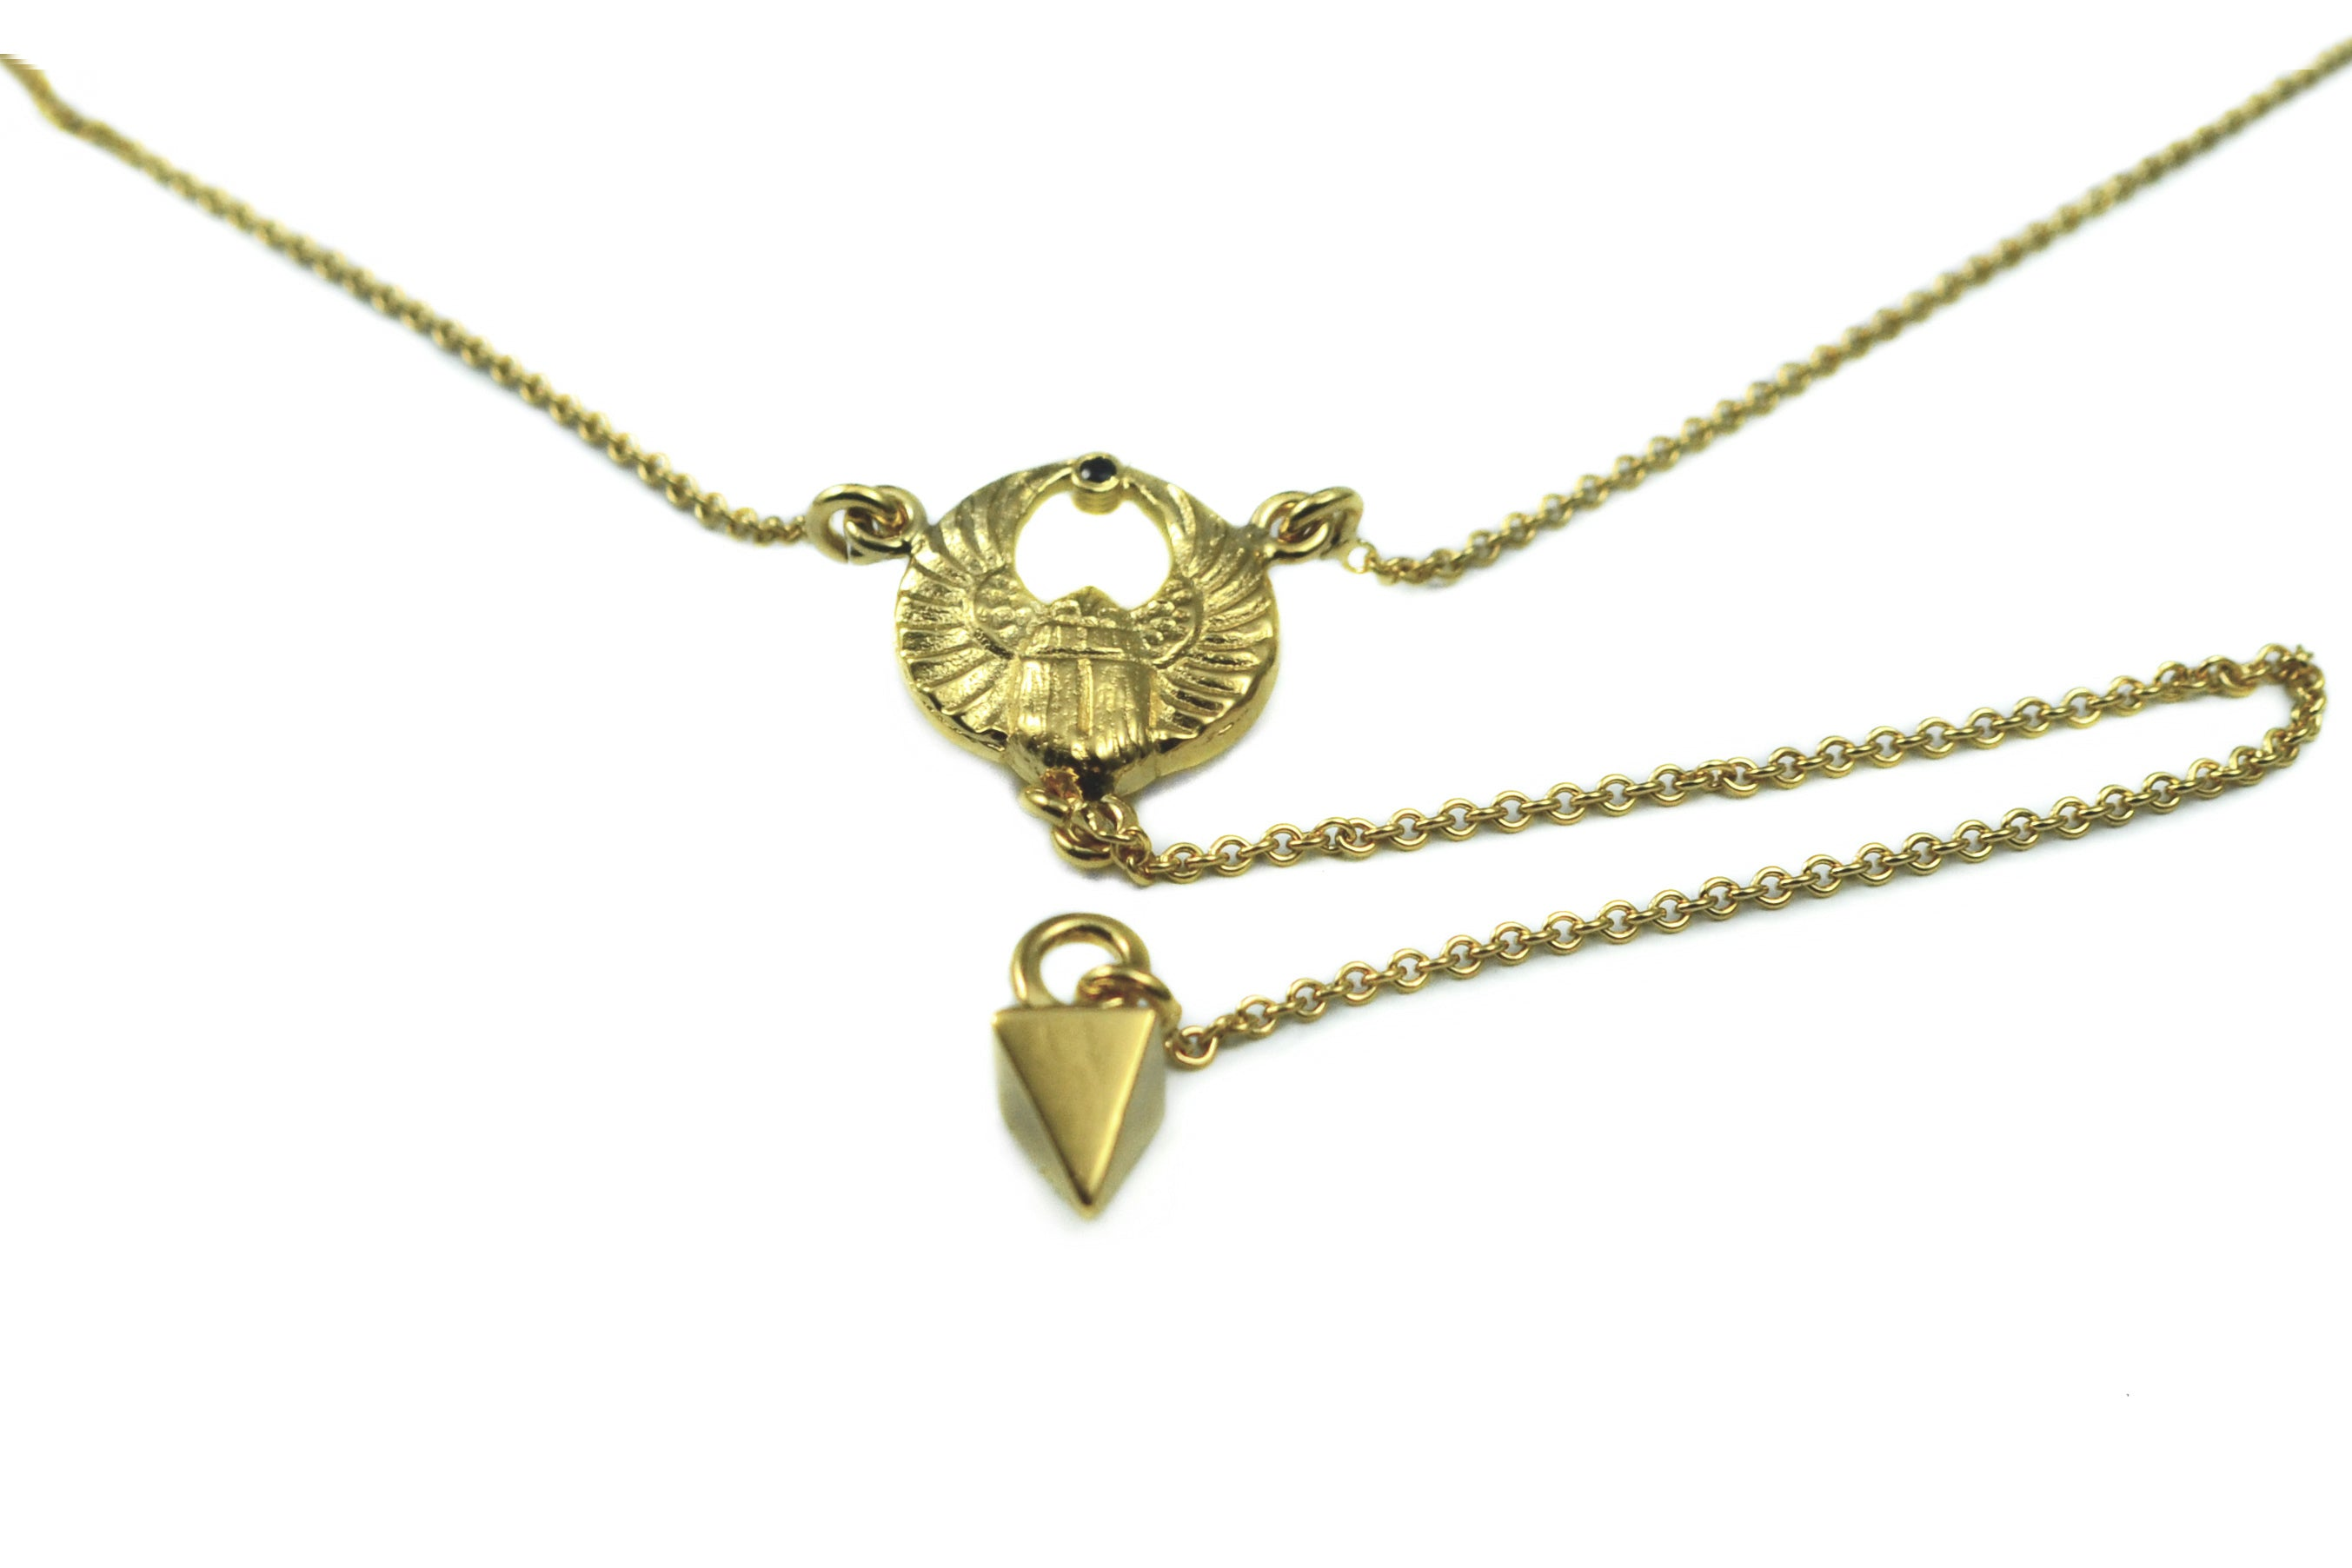 Atum Pendulum Necklace